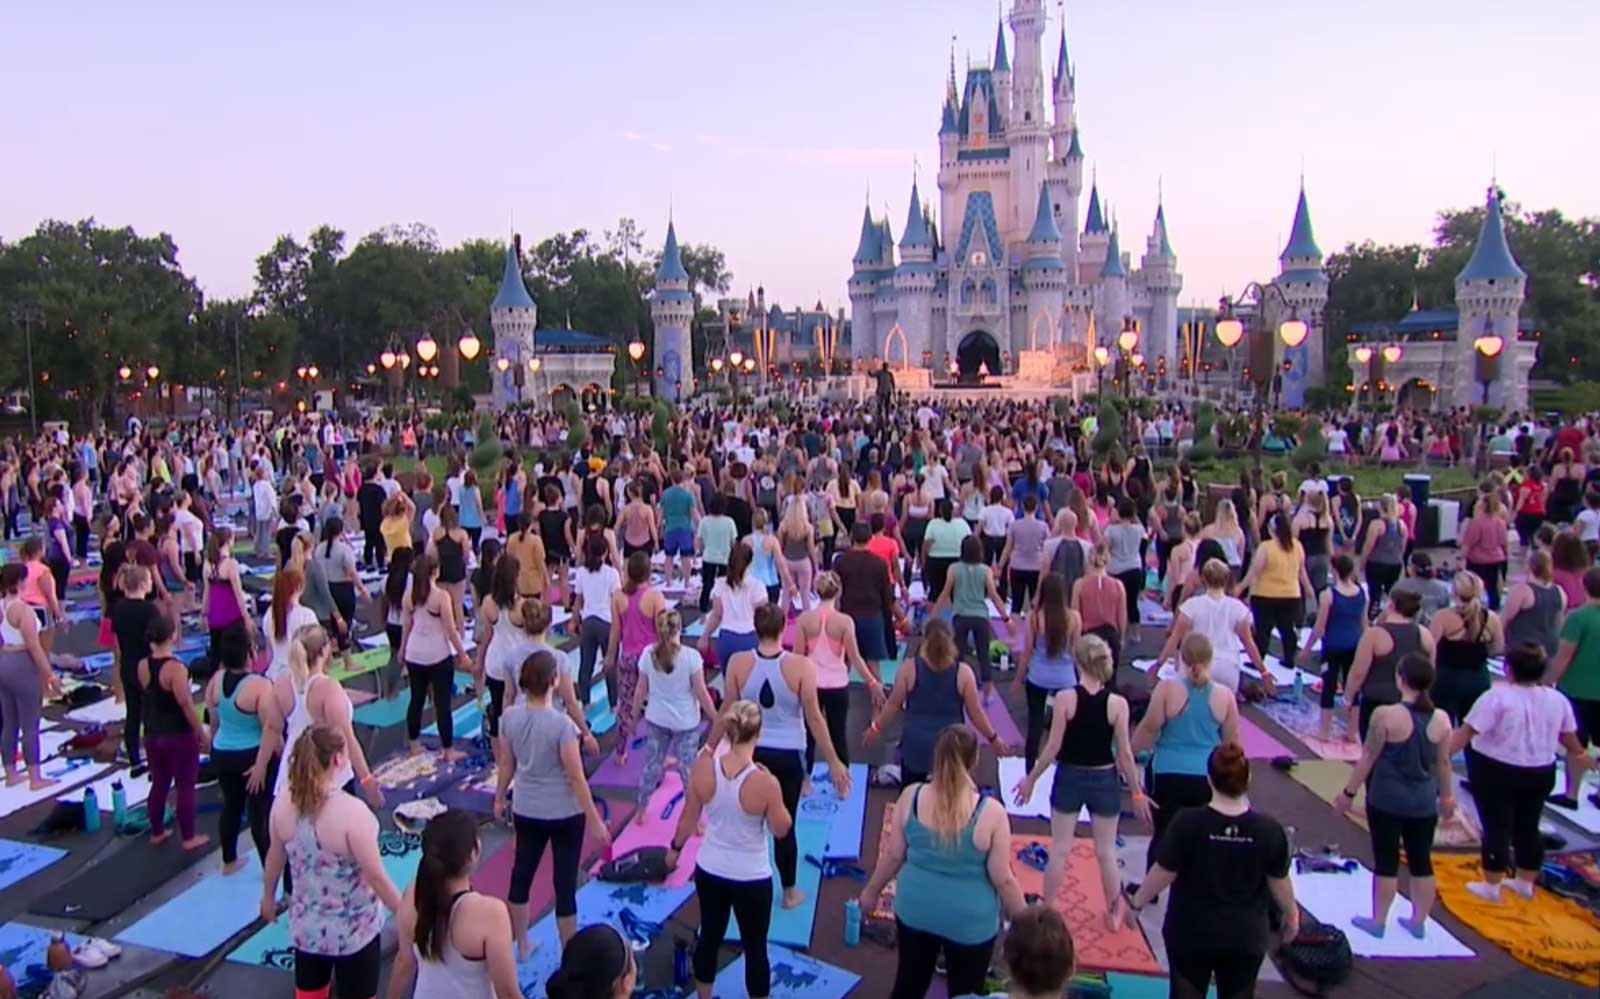 Sunrise yoga at Disneyland for International Yoga Day